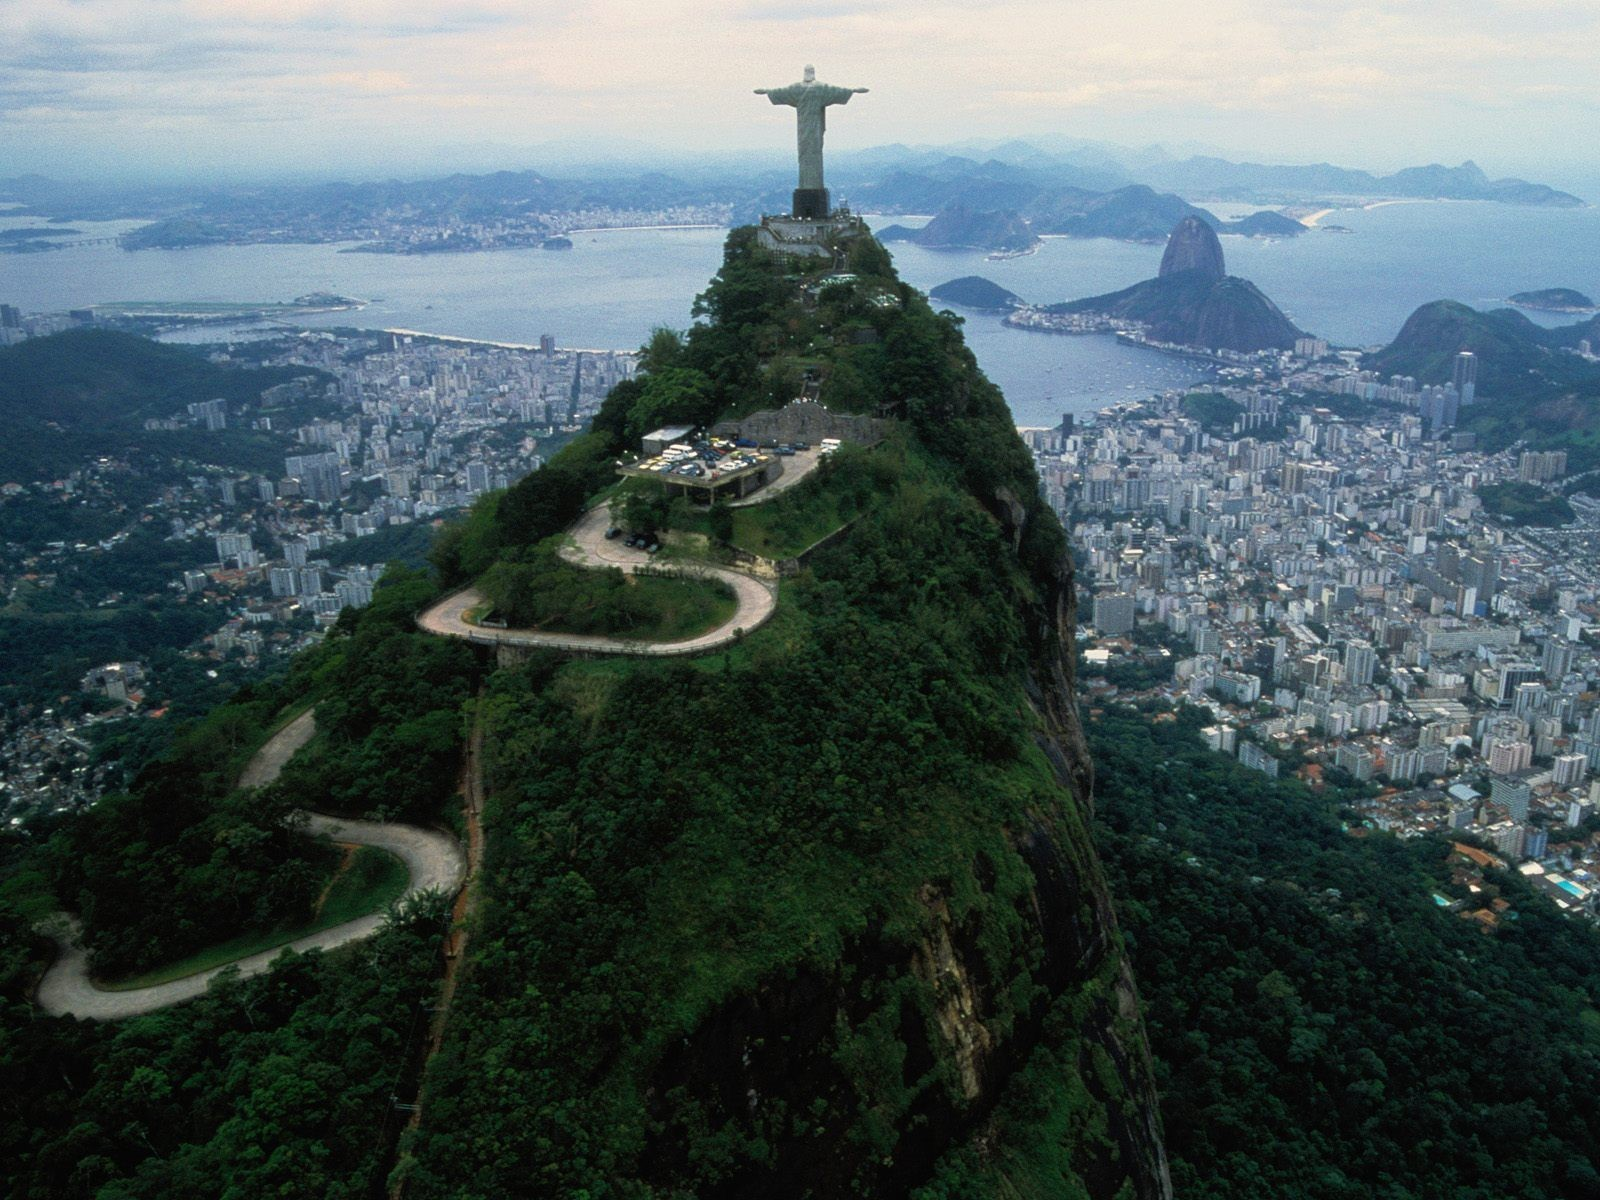 cristo redentor christ the HD Wallpaper